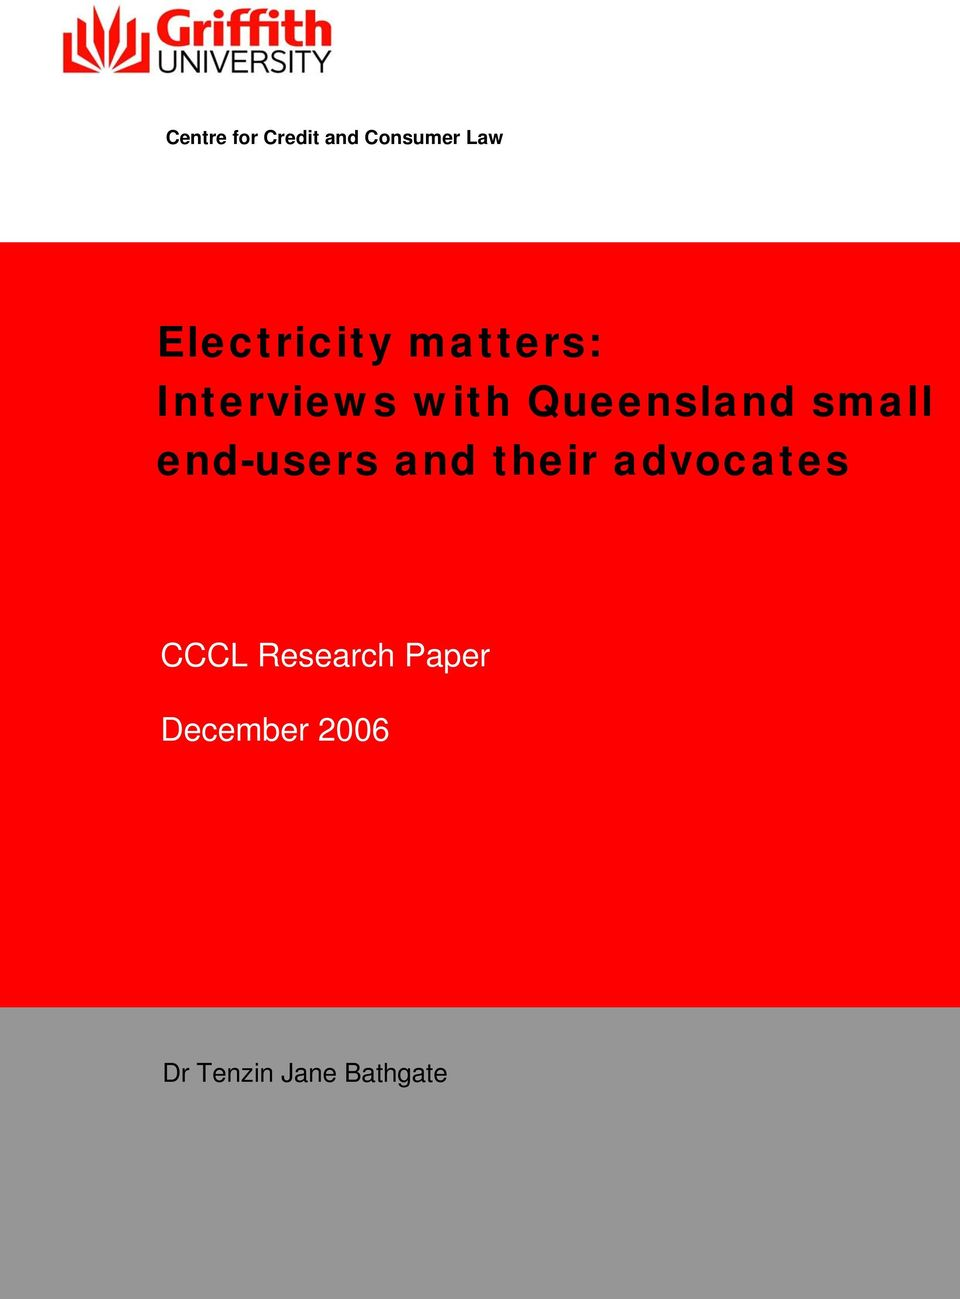 Queensland small end-users and their